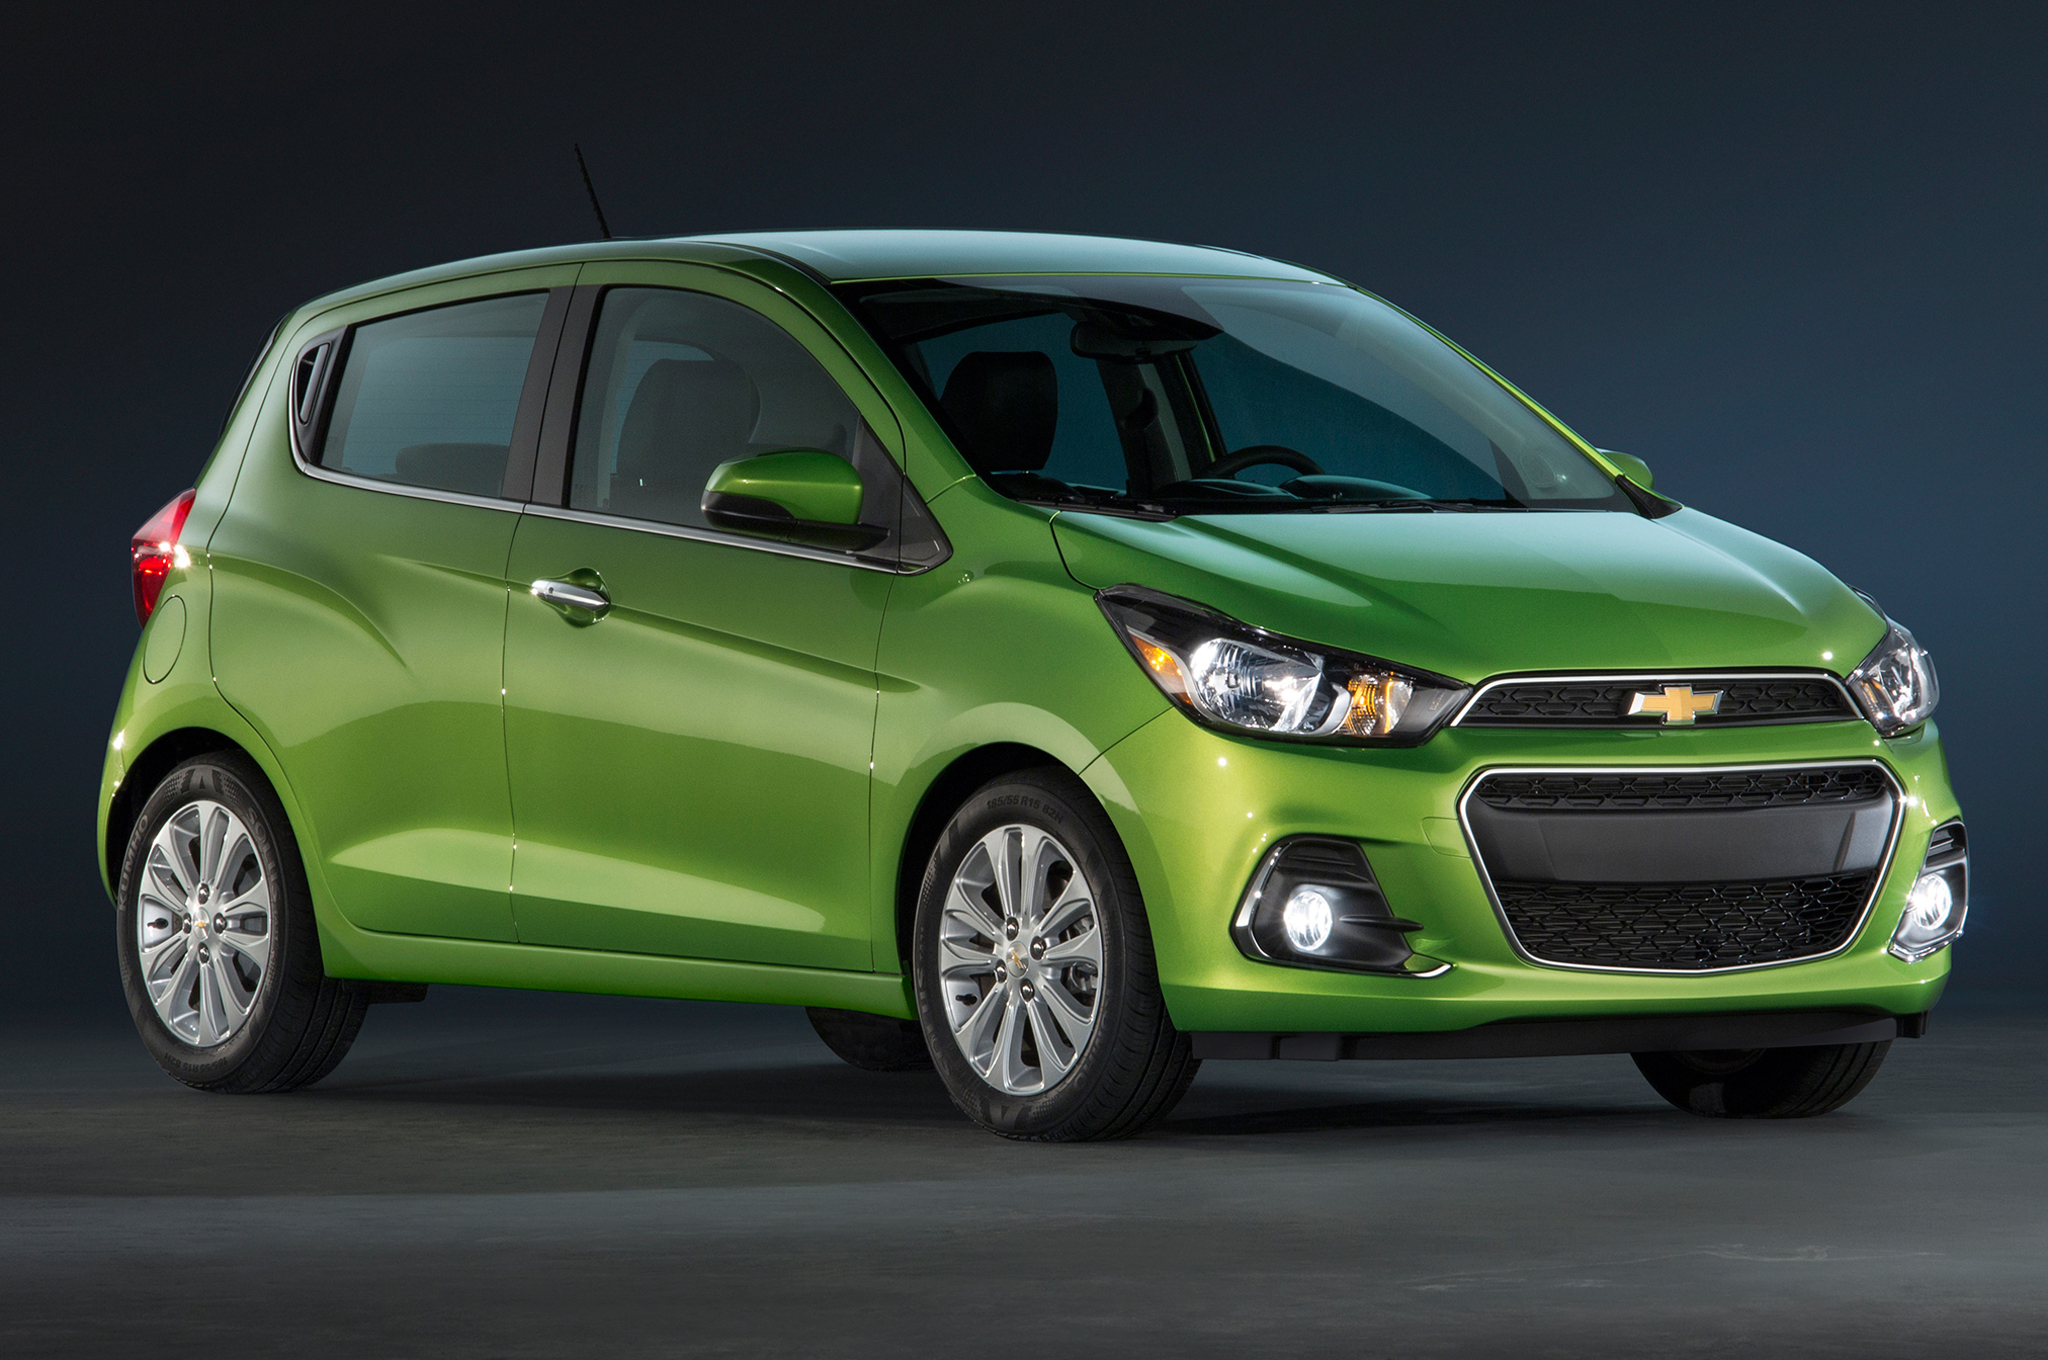 medium resolution of 2016 chevrolet spark first look motortrend2016 chevrolet spark first look